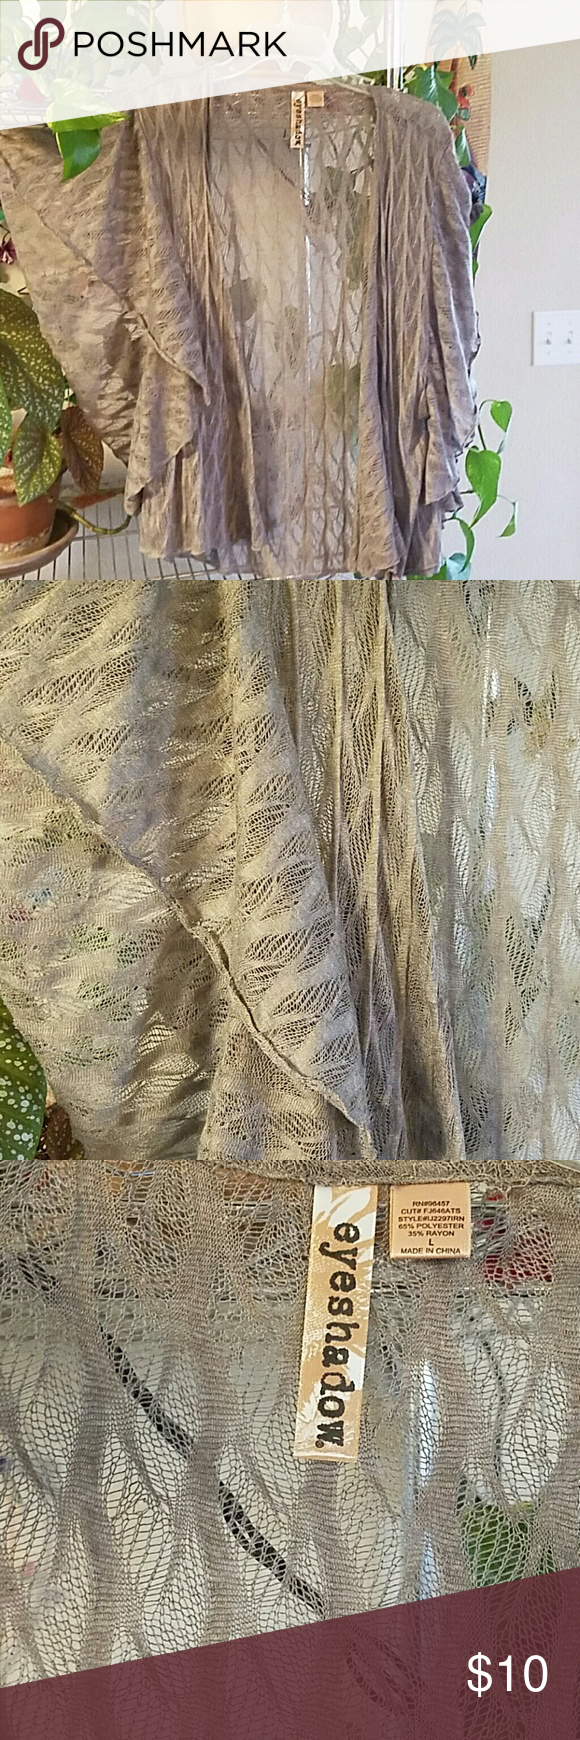 """Lace Duster Beautiful flowing lace look duster, great for spring or summer days to cover up any spaghetti strap top.  Length 23""""  65% polyester  35% rayon  Excellent condition Eyeshadow Sweaters Shrugs & Ponchos"""